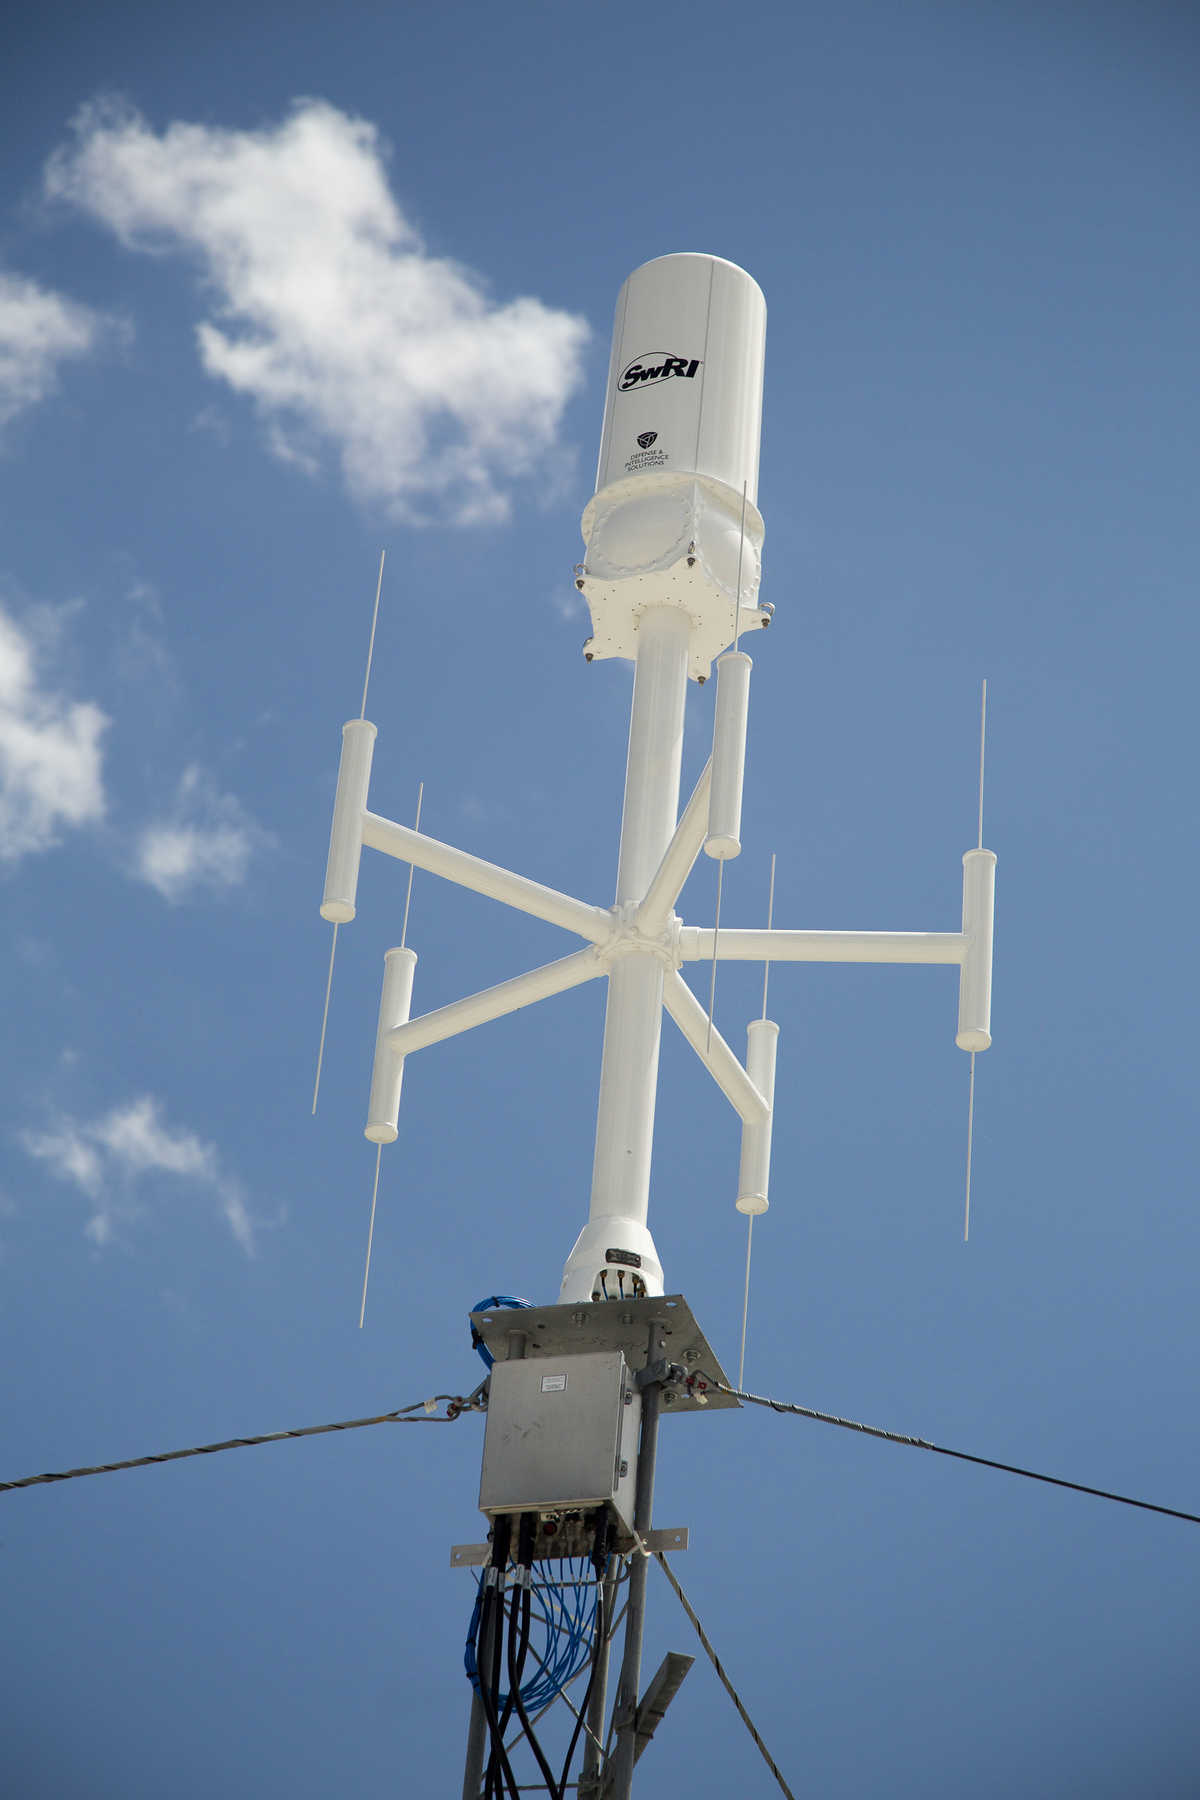 White antenna with blue sky and clouds in the background